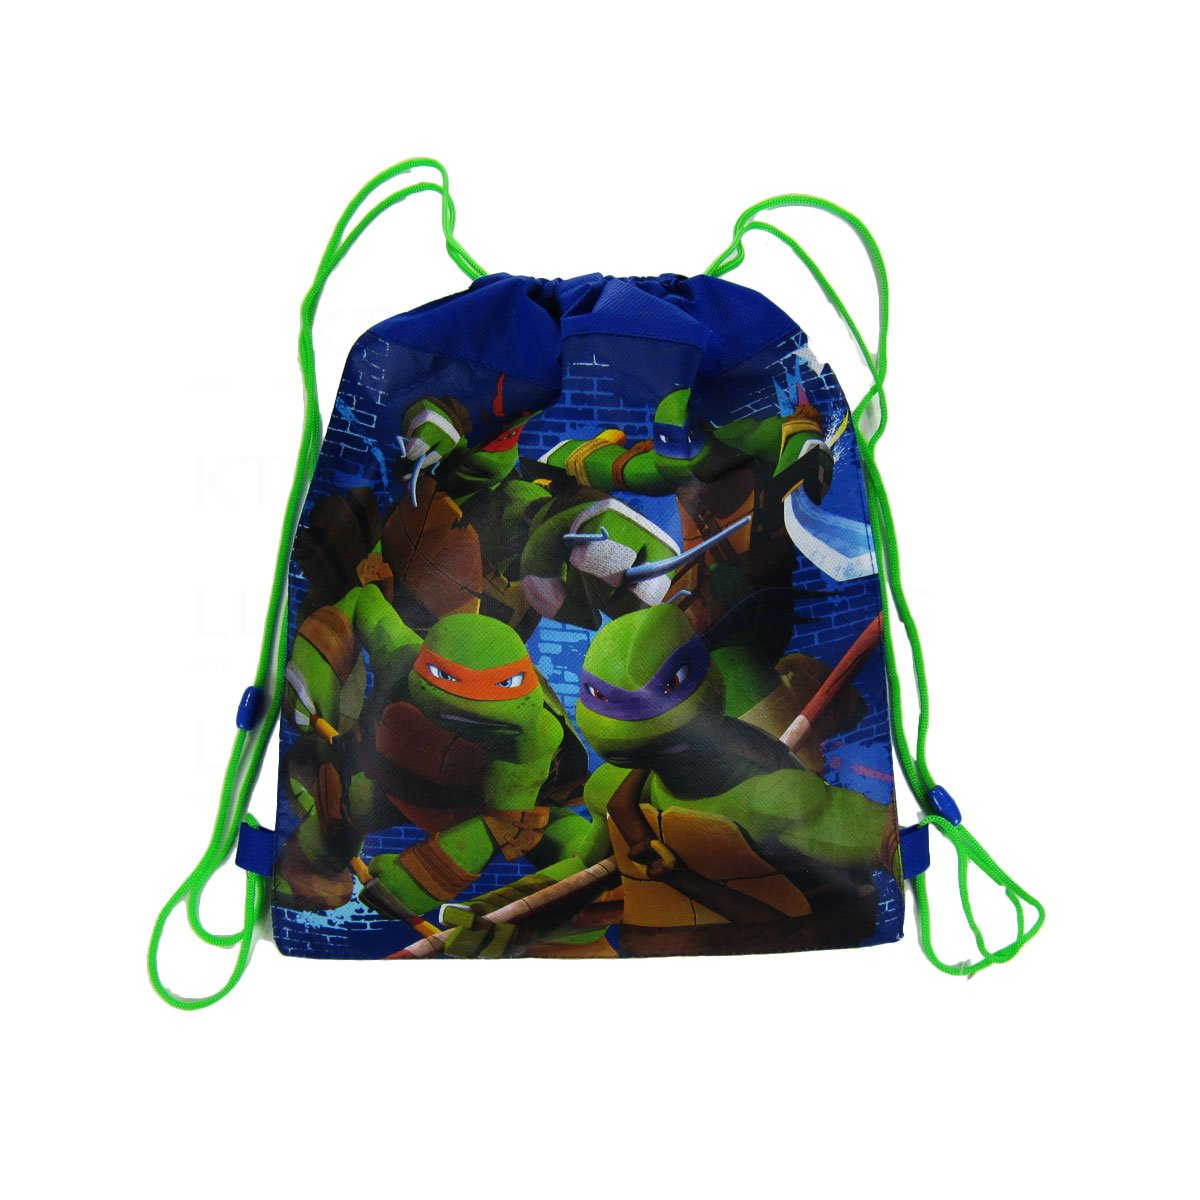 Amazon.com: Officially Licensed Nickelodeon Drawstring Bag - Teenage Mutant Ninja Turtles: Sports & Outdoors